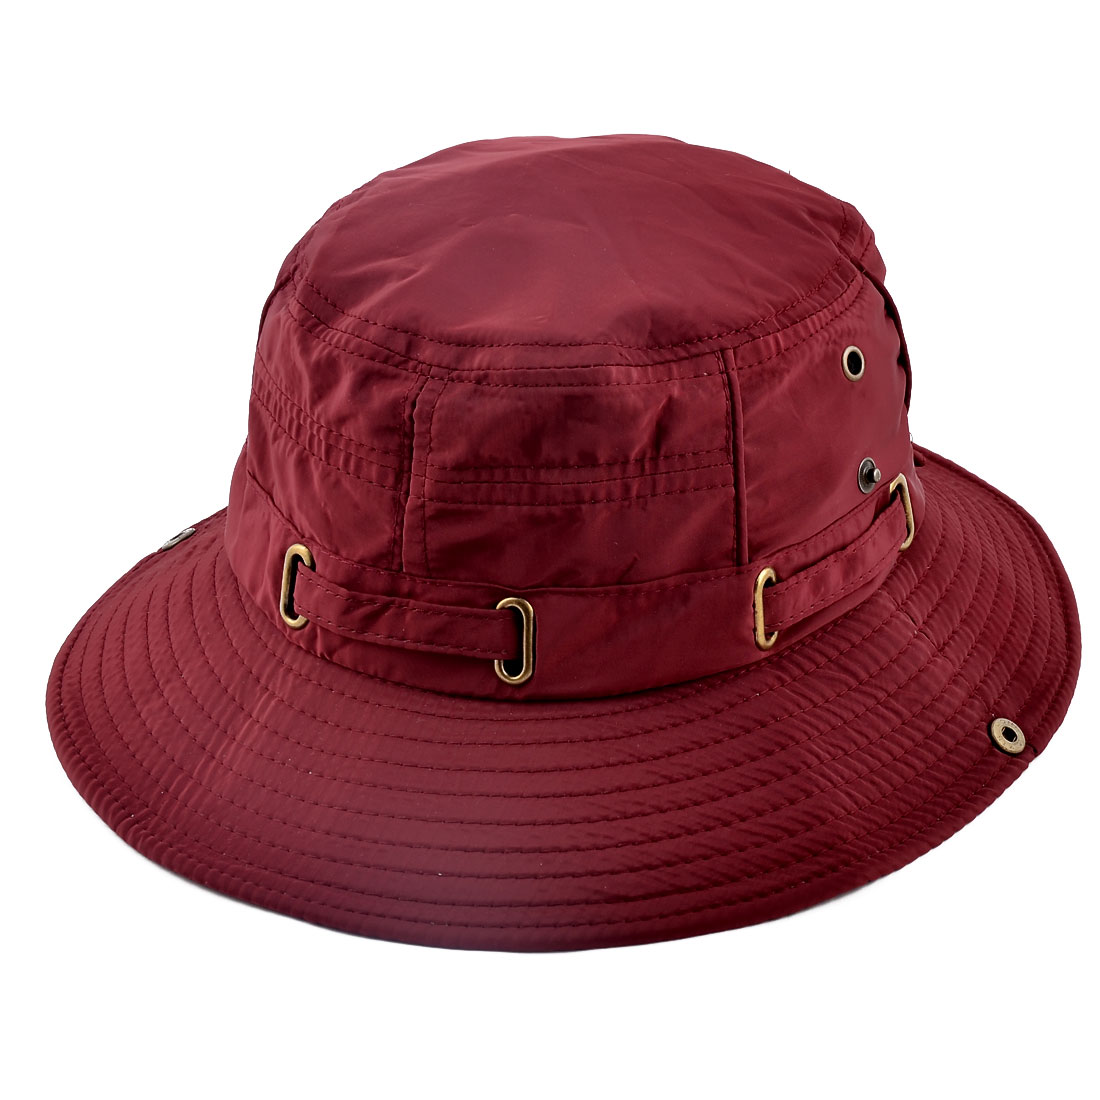 Fisherman Cotton Blends Outdoor Sports Mountaineering Hunting Adjustable Strap Wide Brim Bucket Summer Cap Fishing Hat Burgundy